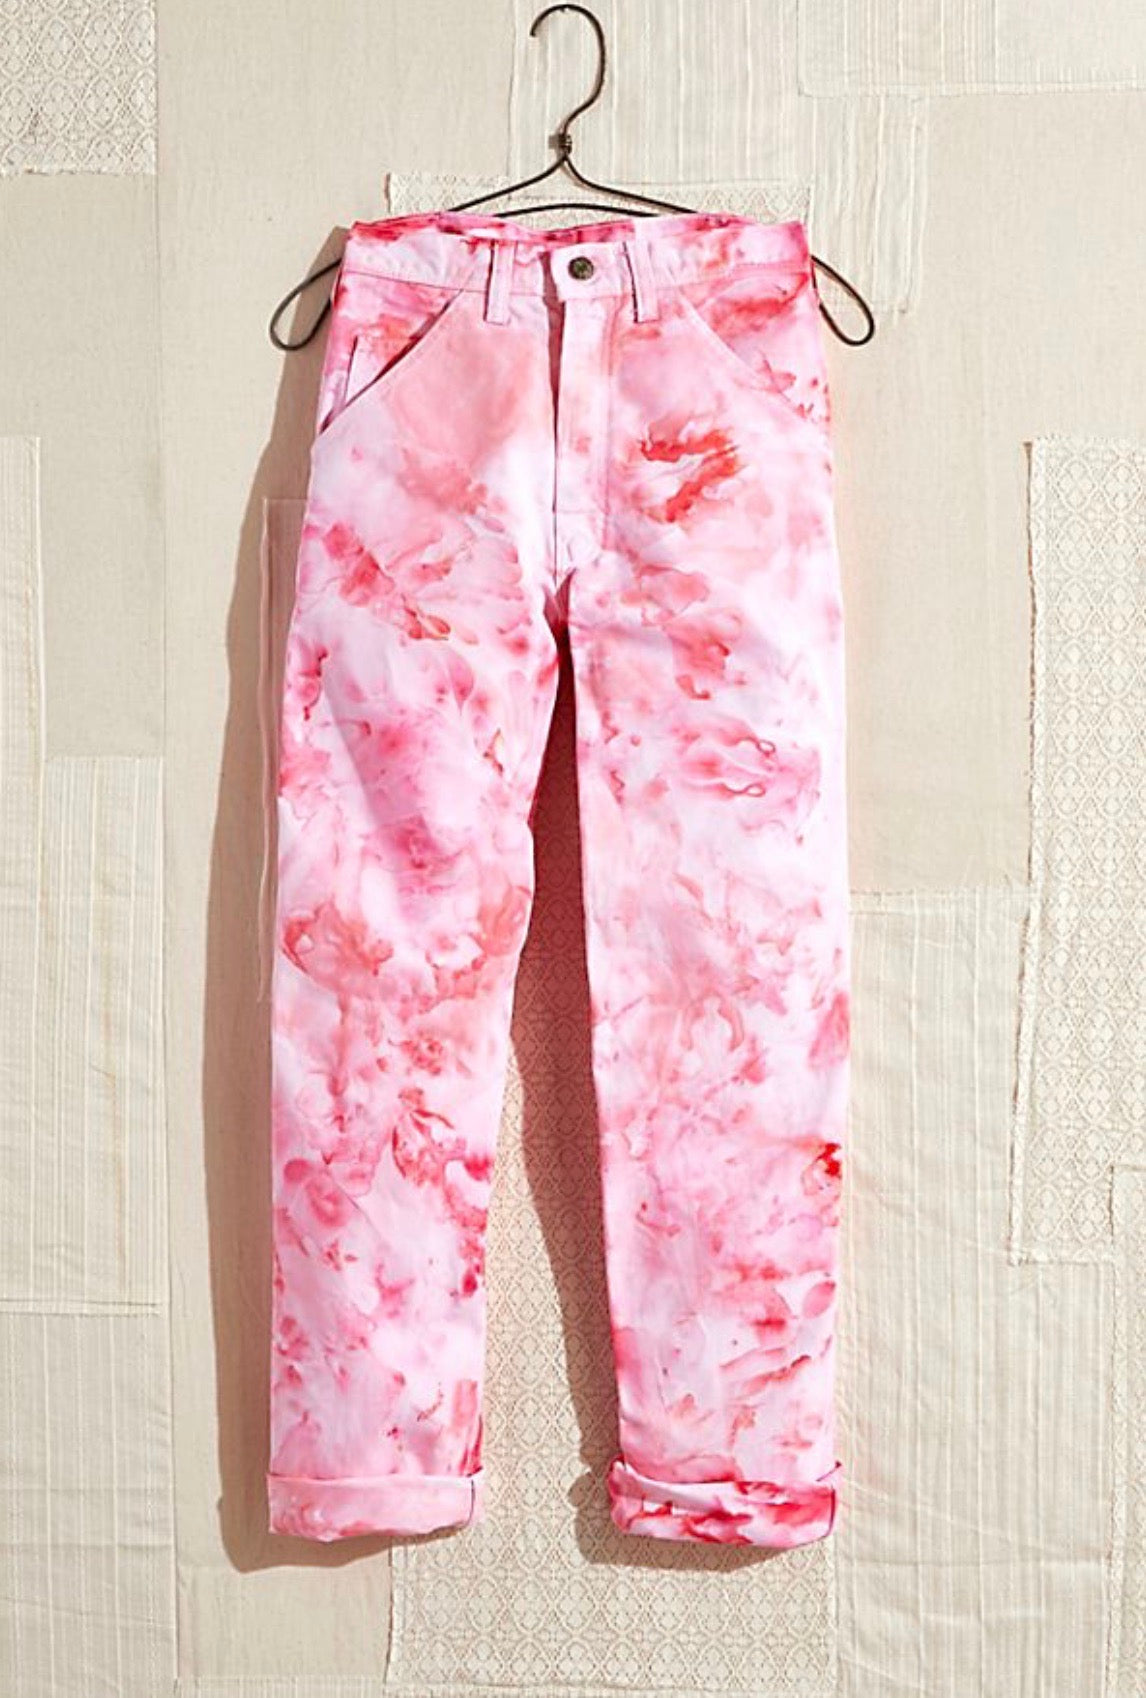 Copy of Painter's Pants in Rose - riverside tool & dye